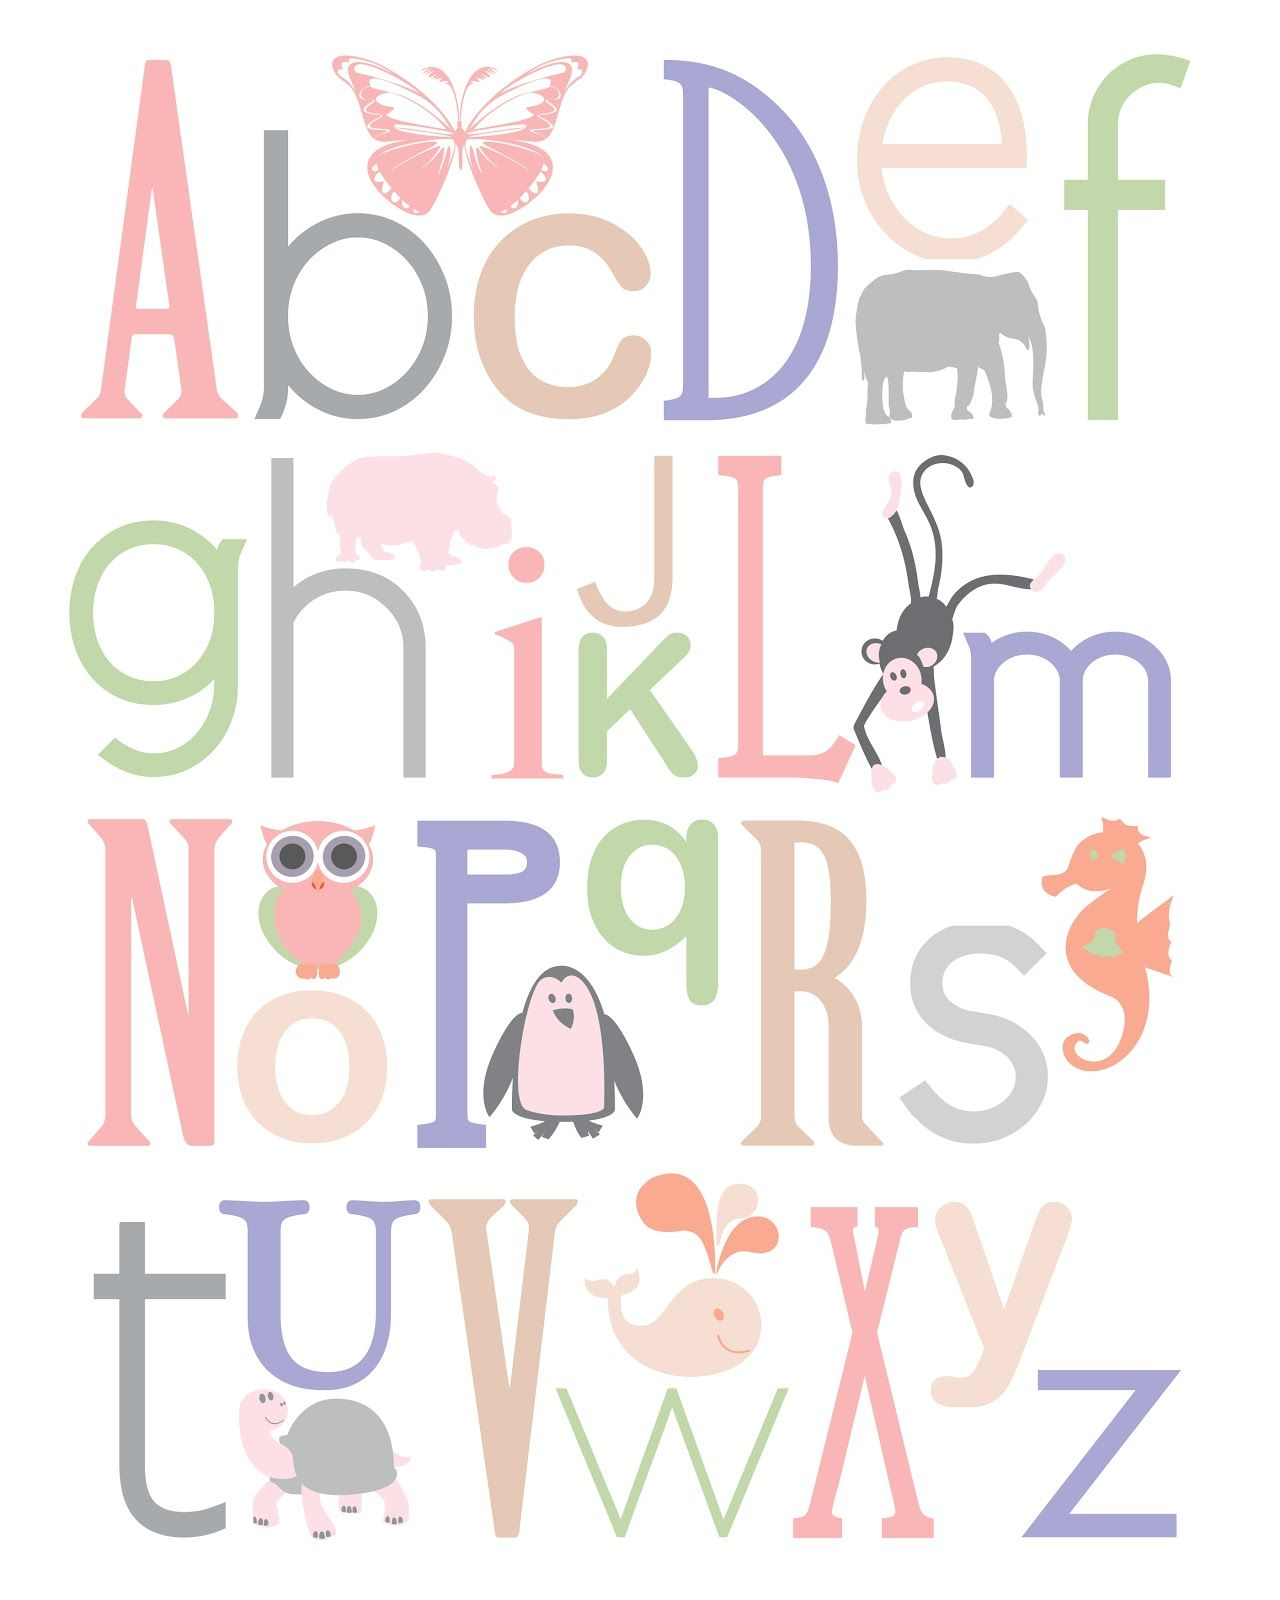 Baby Nursery Art Print Dog Abc Nursery Decor Alphabet Print: Nursery Letter Print - Free!